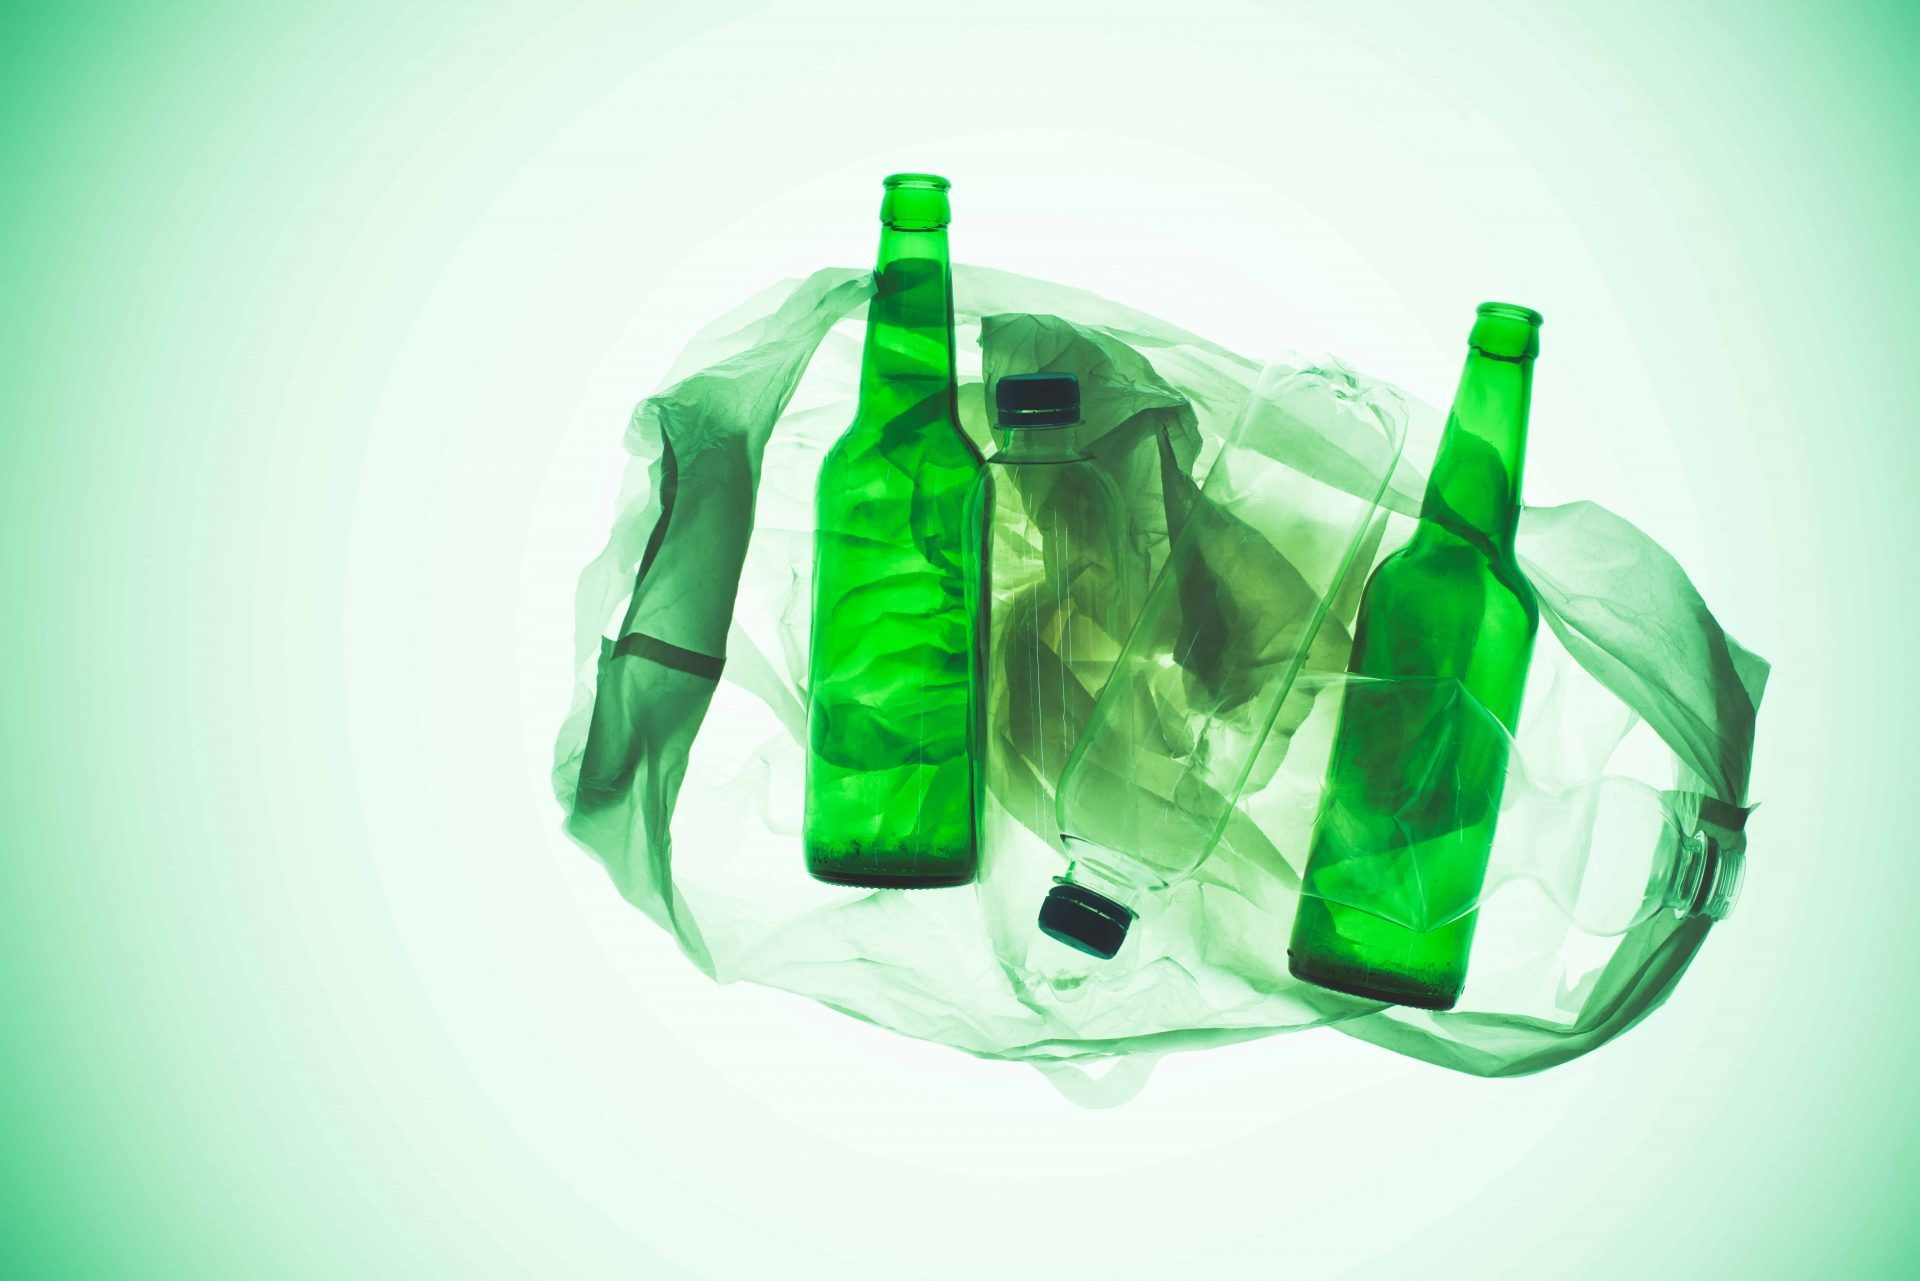 Glass bottles intertwined with a plastic bag